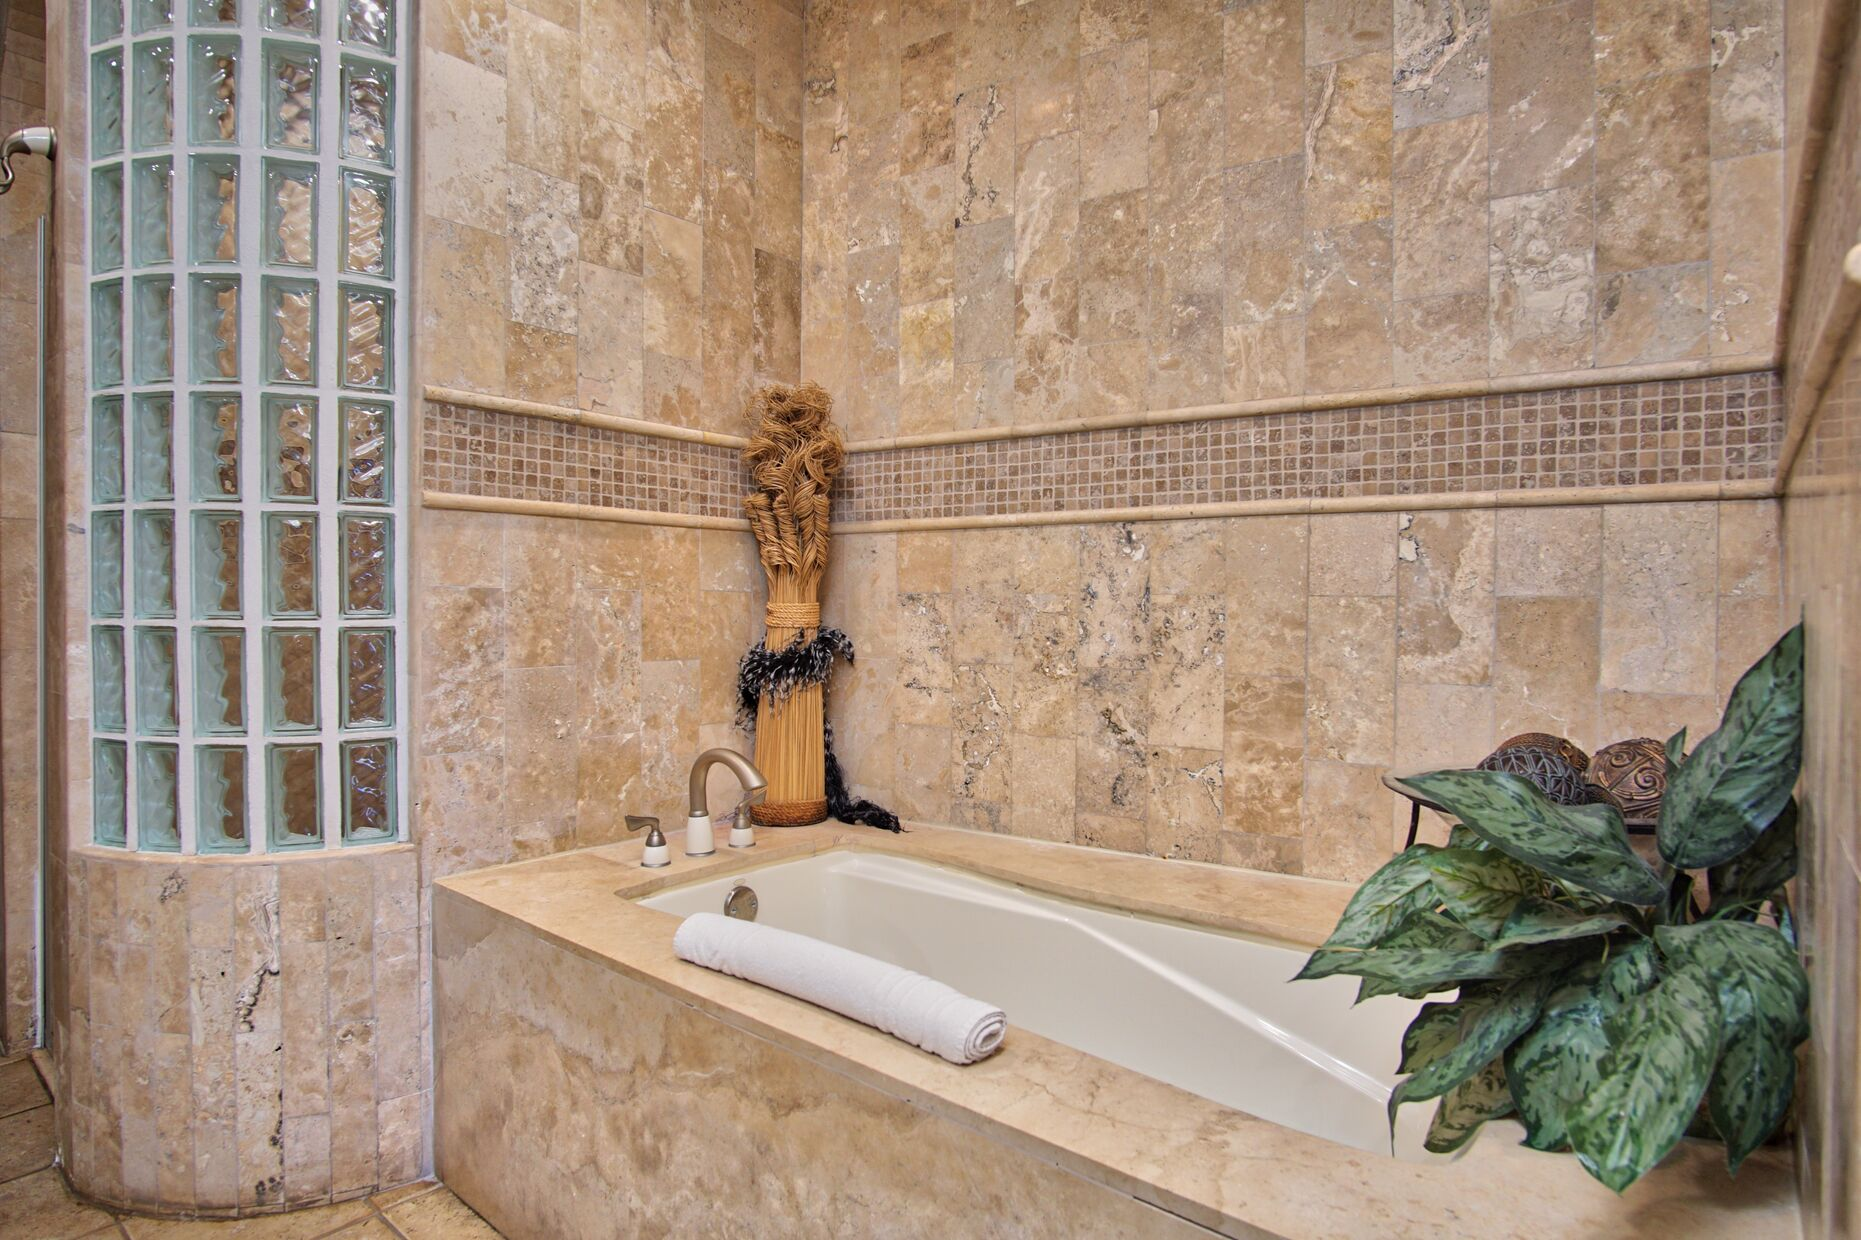 Tub and glass block in master bedroom